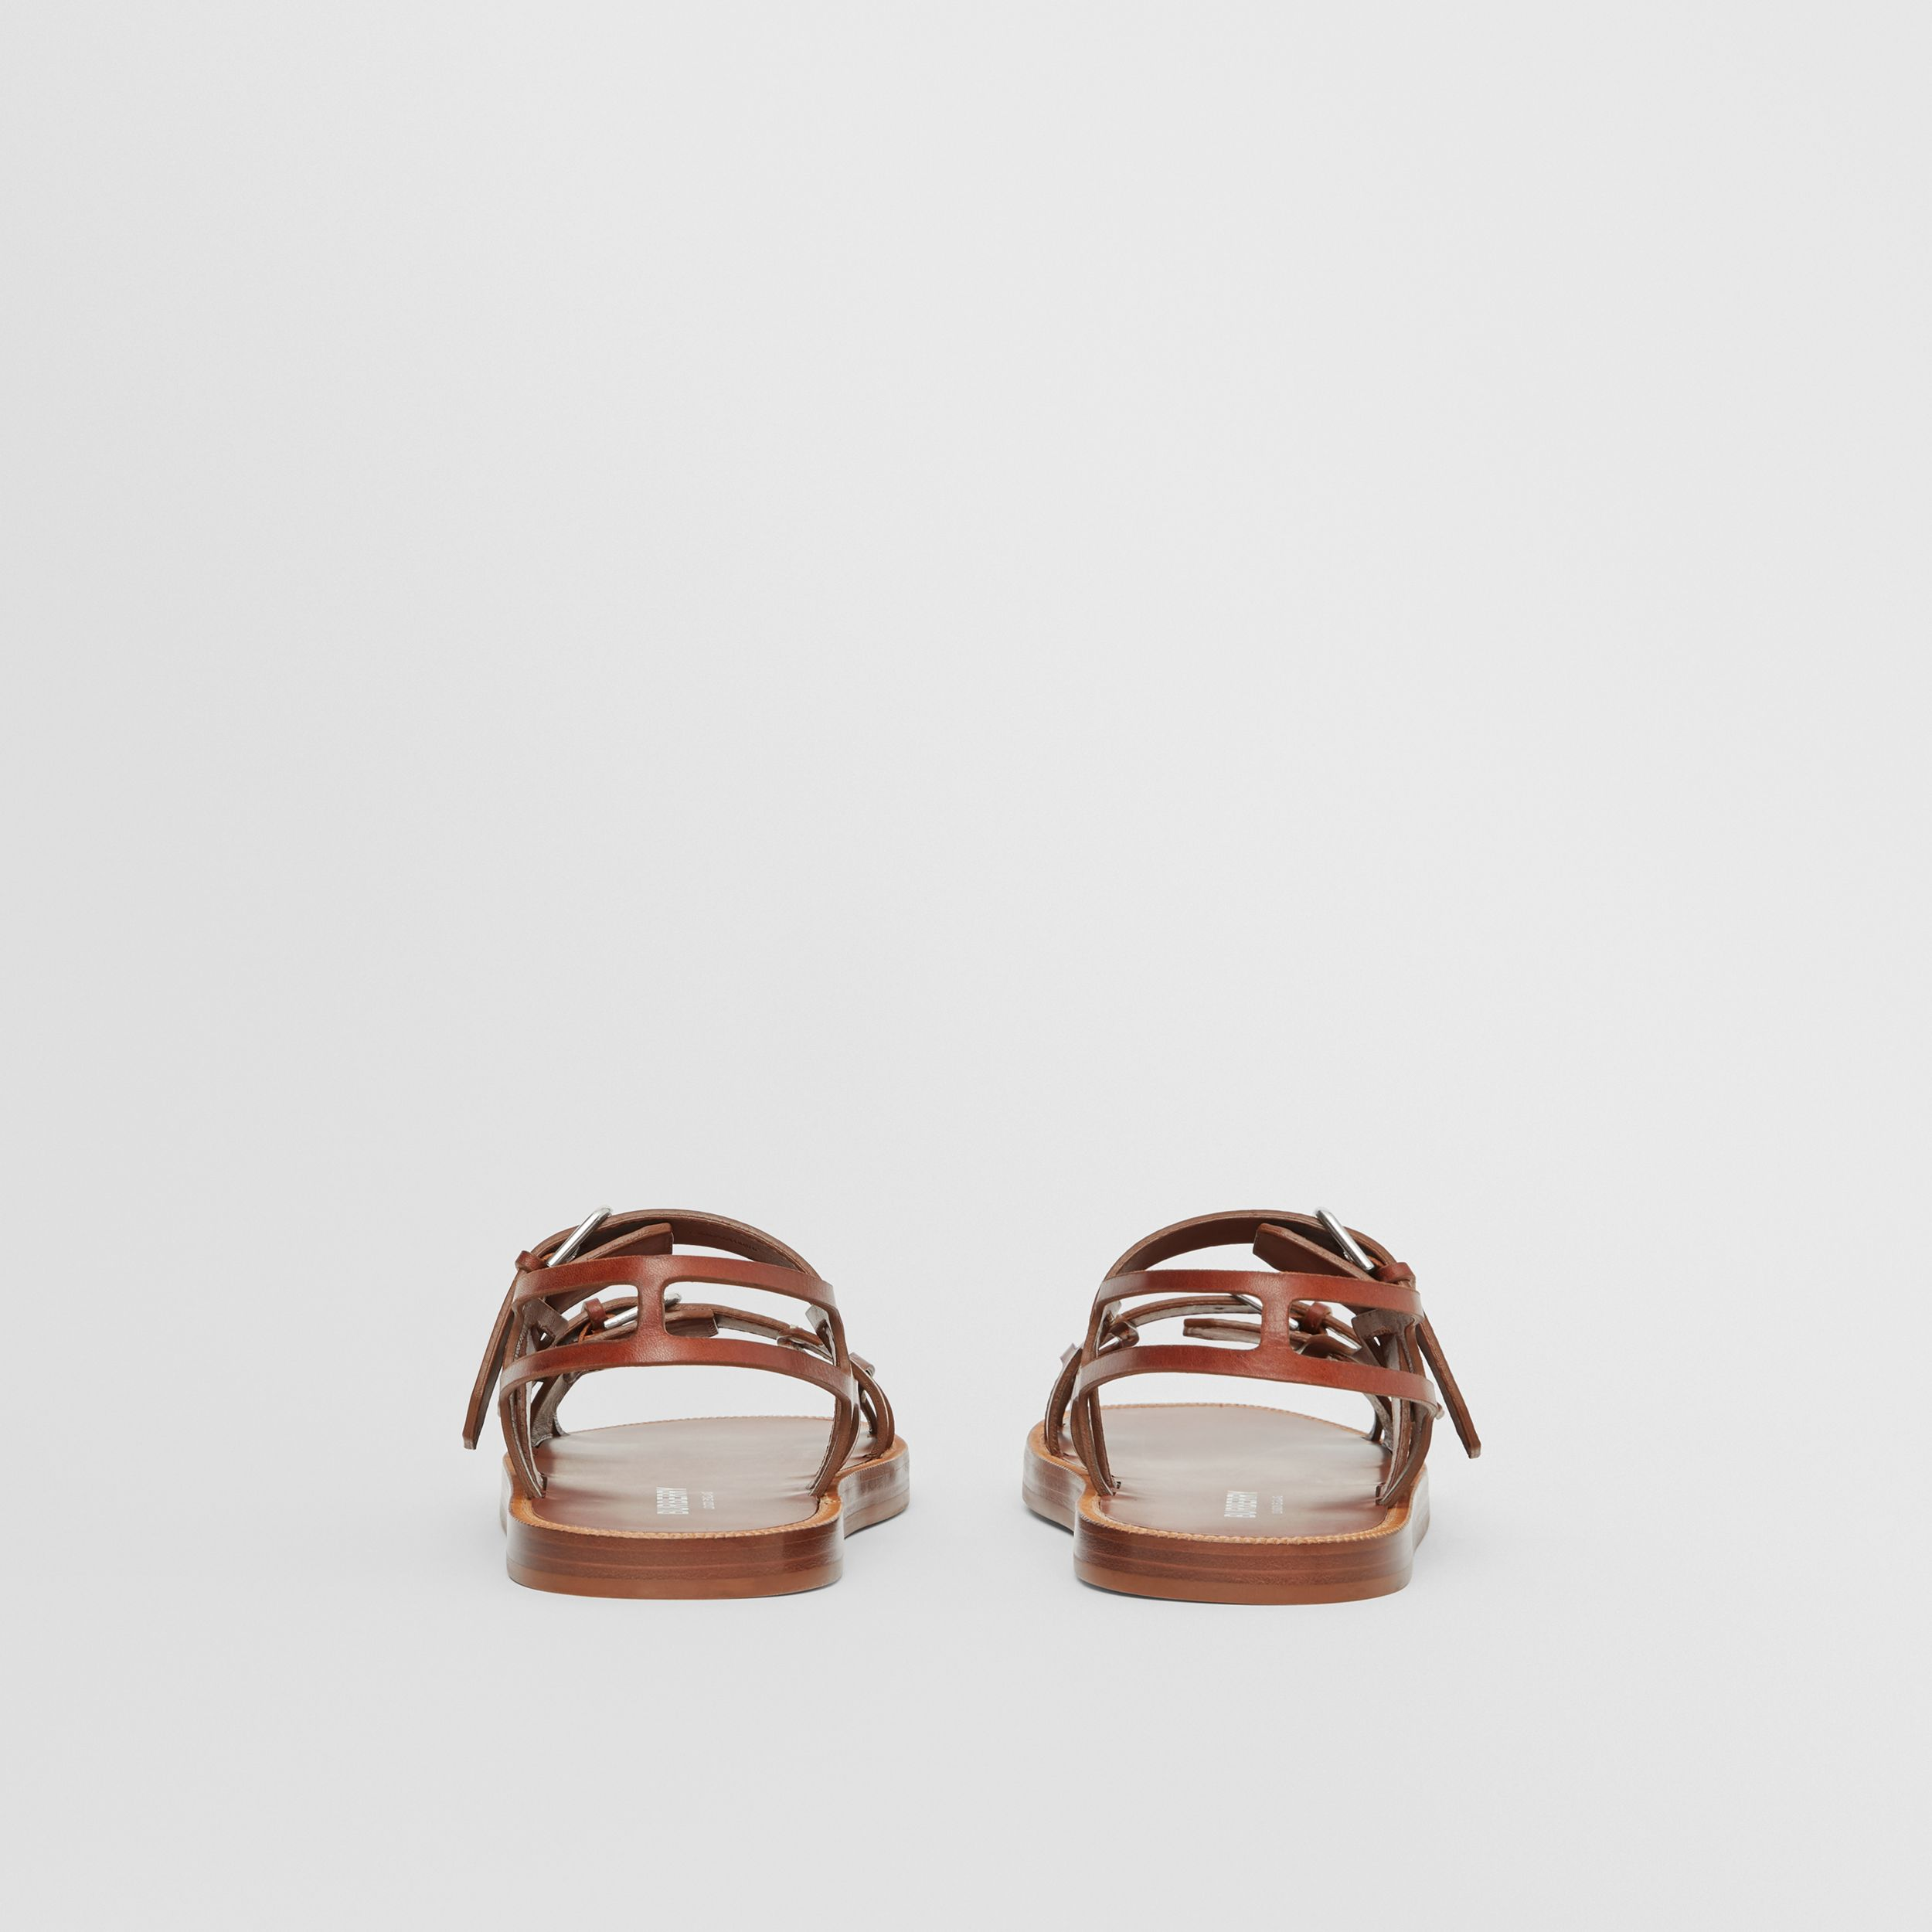 Leather Webb Sandals in Tan - Men | Burberry - 4